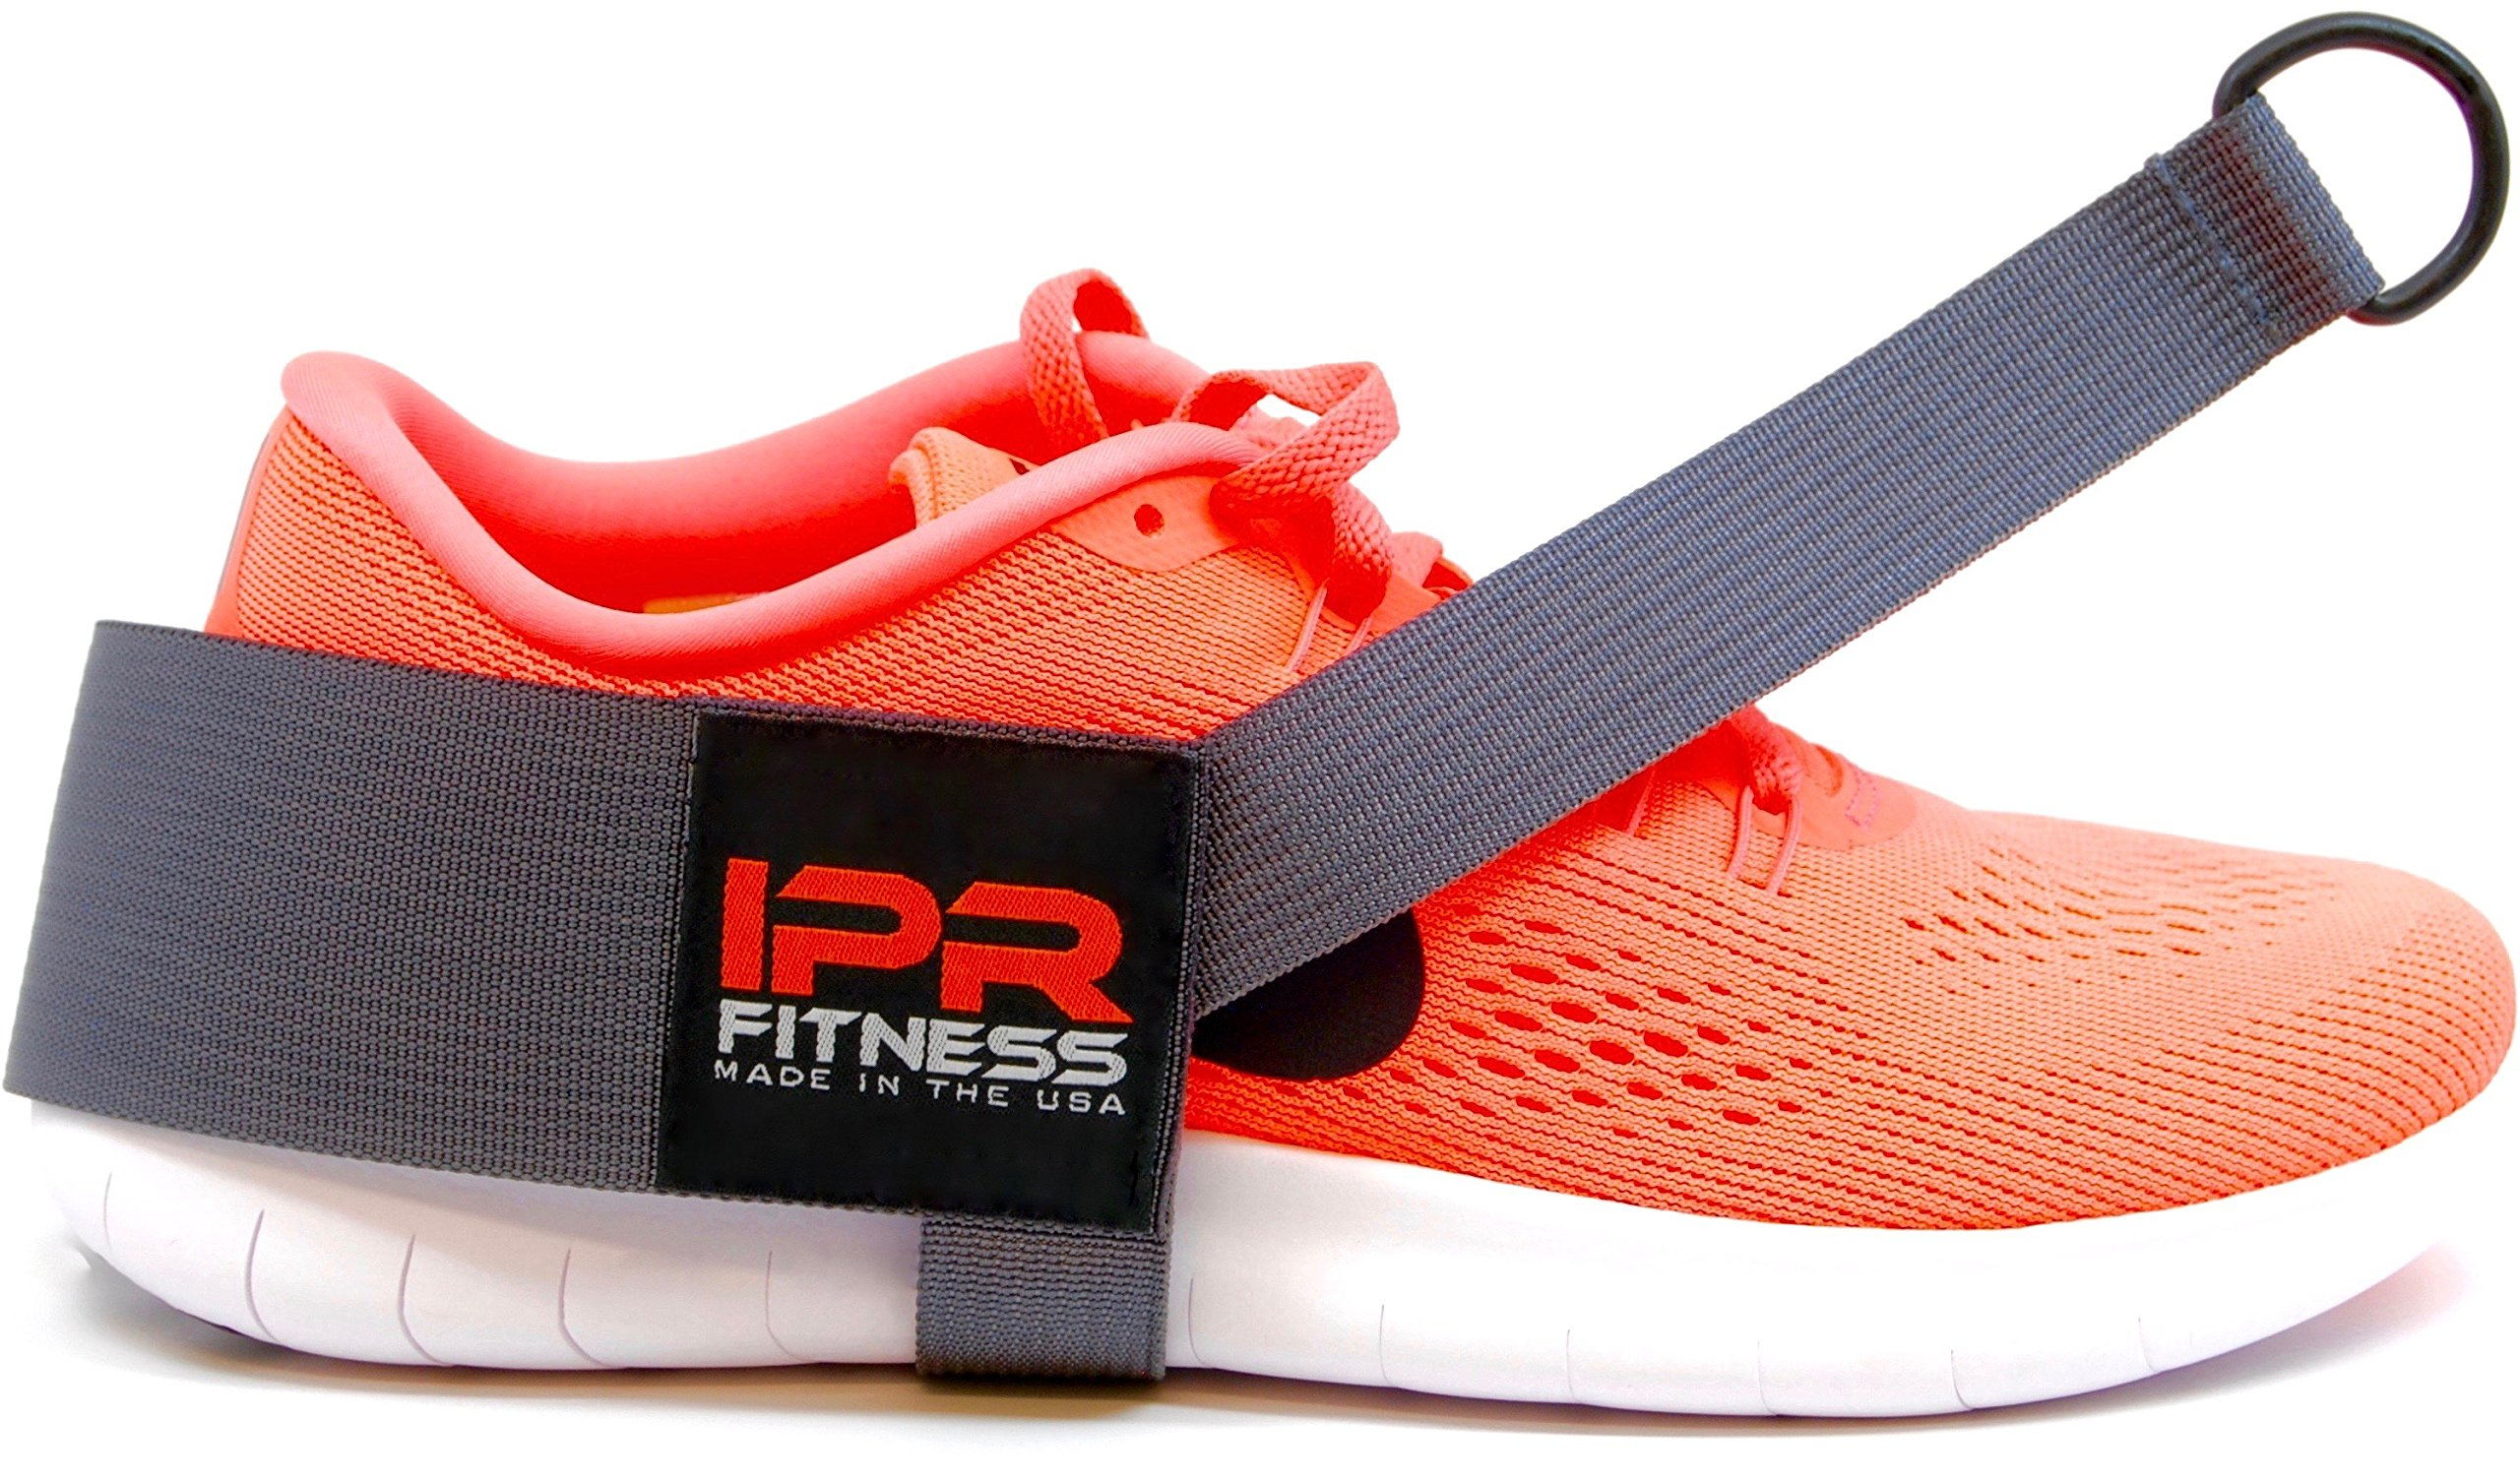 "IPR Fitness Glute Kickback LITE ""Patented"" 100% Made in The USA - Cable Machine Ankle Strap"